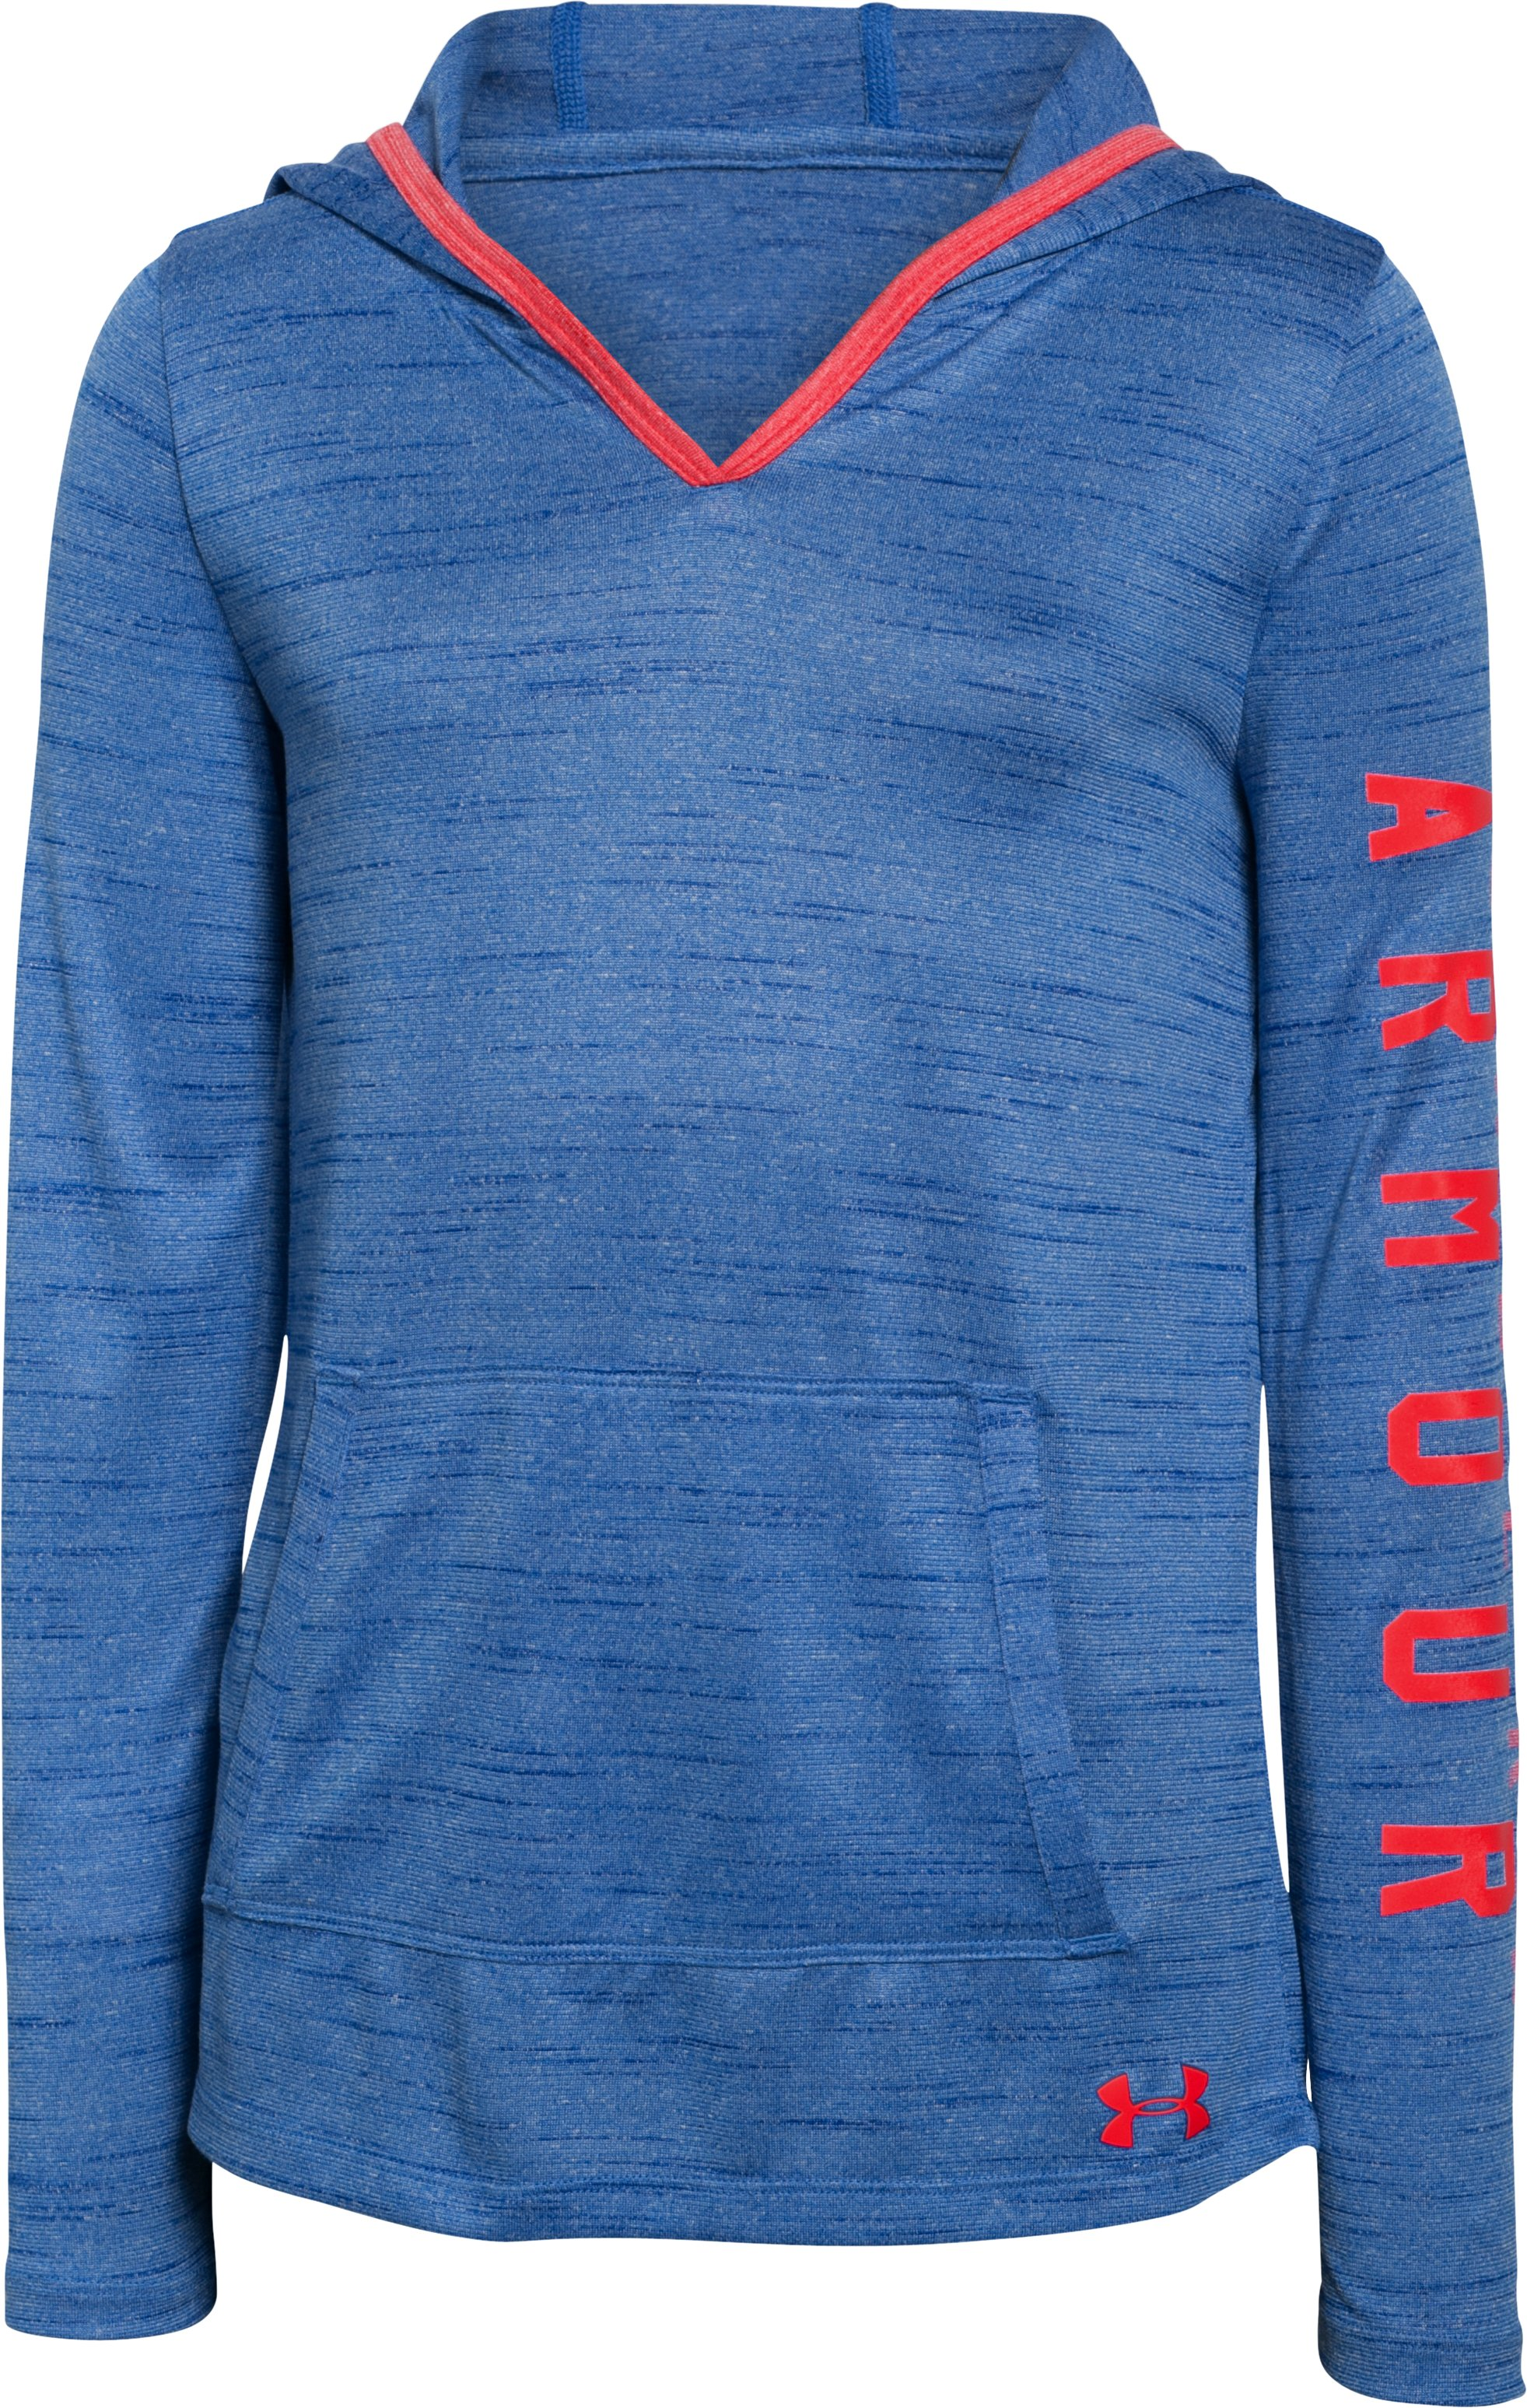 Girls' UA Tech™ Hoodie, ULTRA BLUE